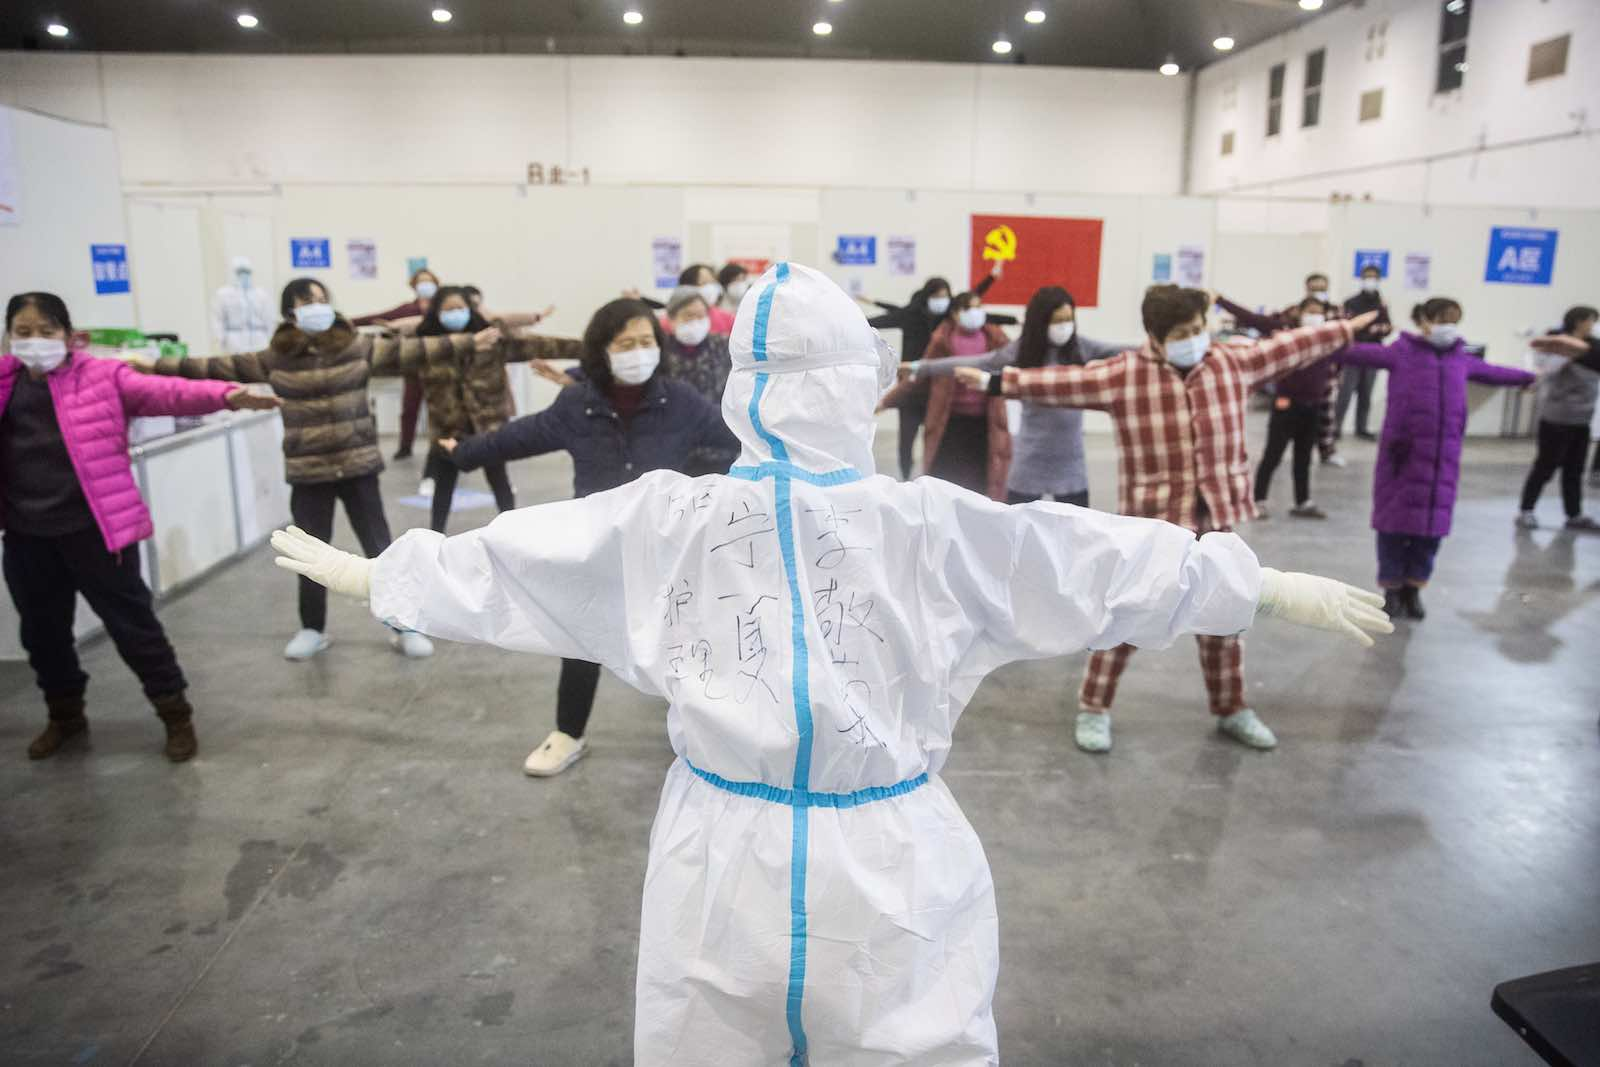 Medical staff lead patients with mild symptoms of the COVID-19 coronavirus in group exercises at an exhibition centre converted into a hospital in Wuhan, Hubei province (STR via Getty Images)